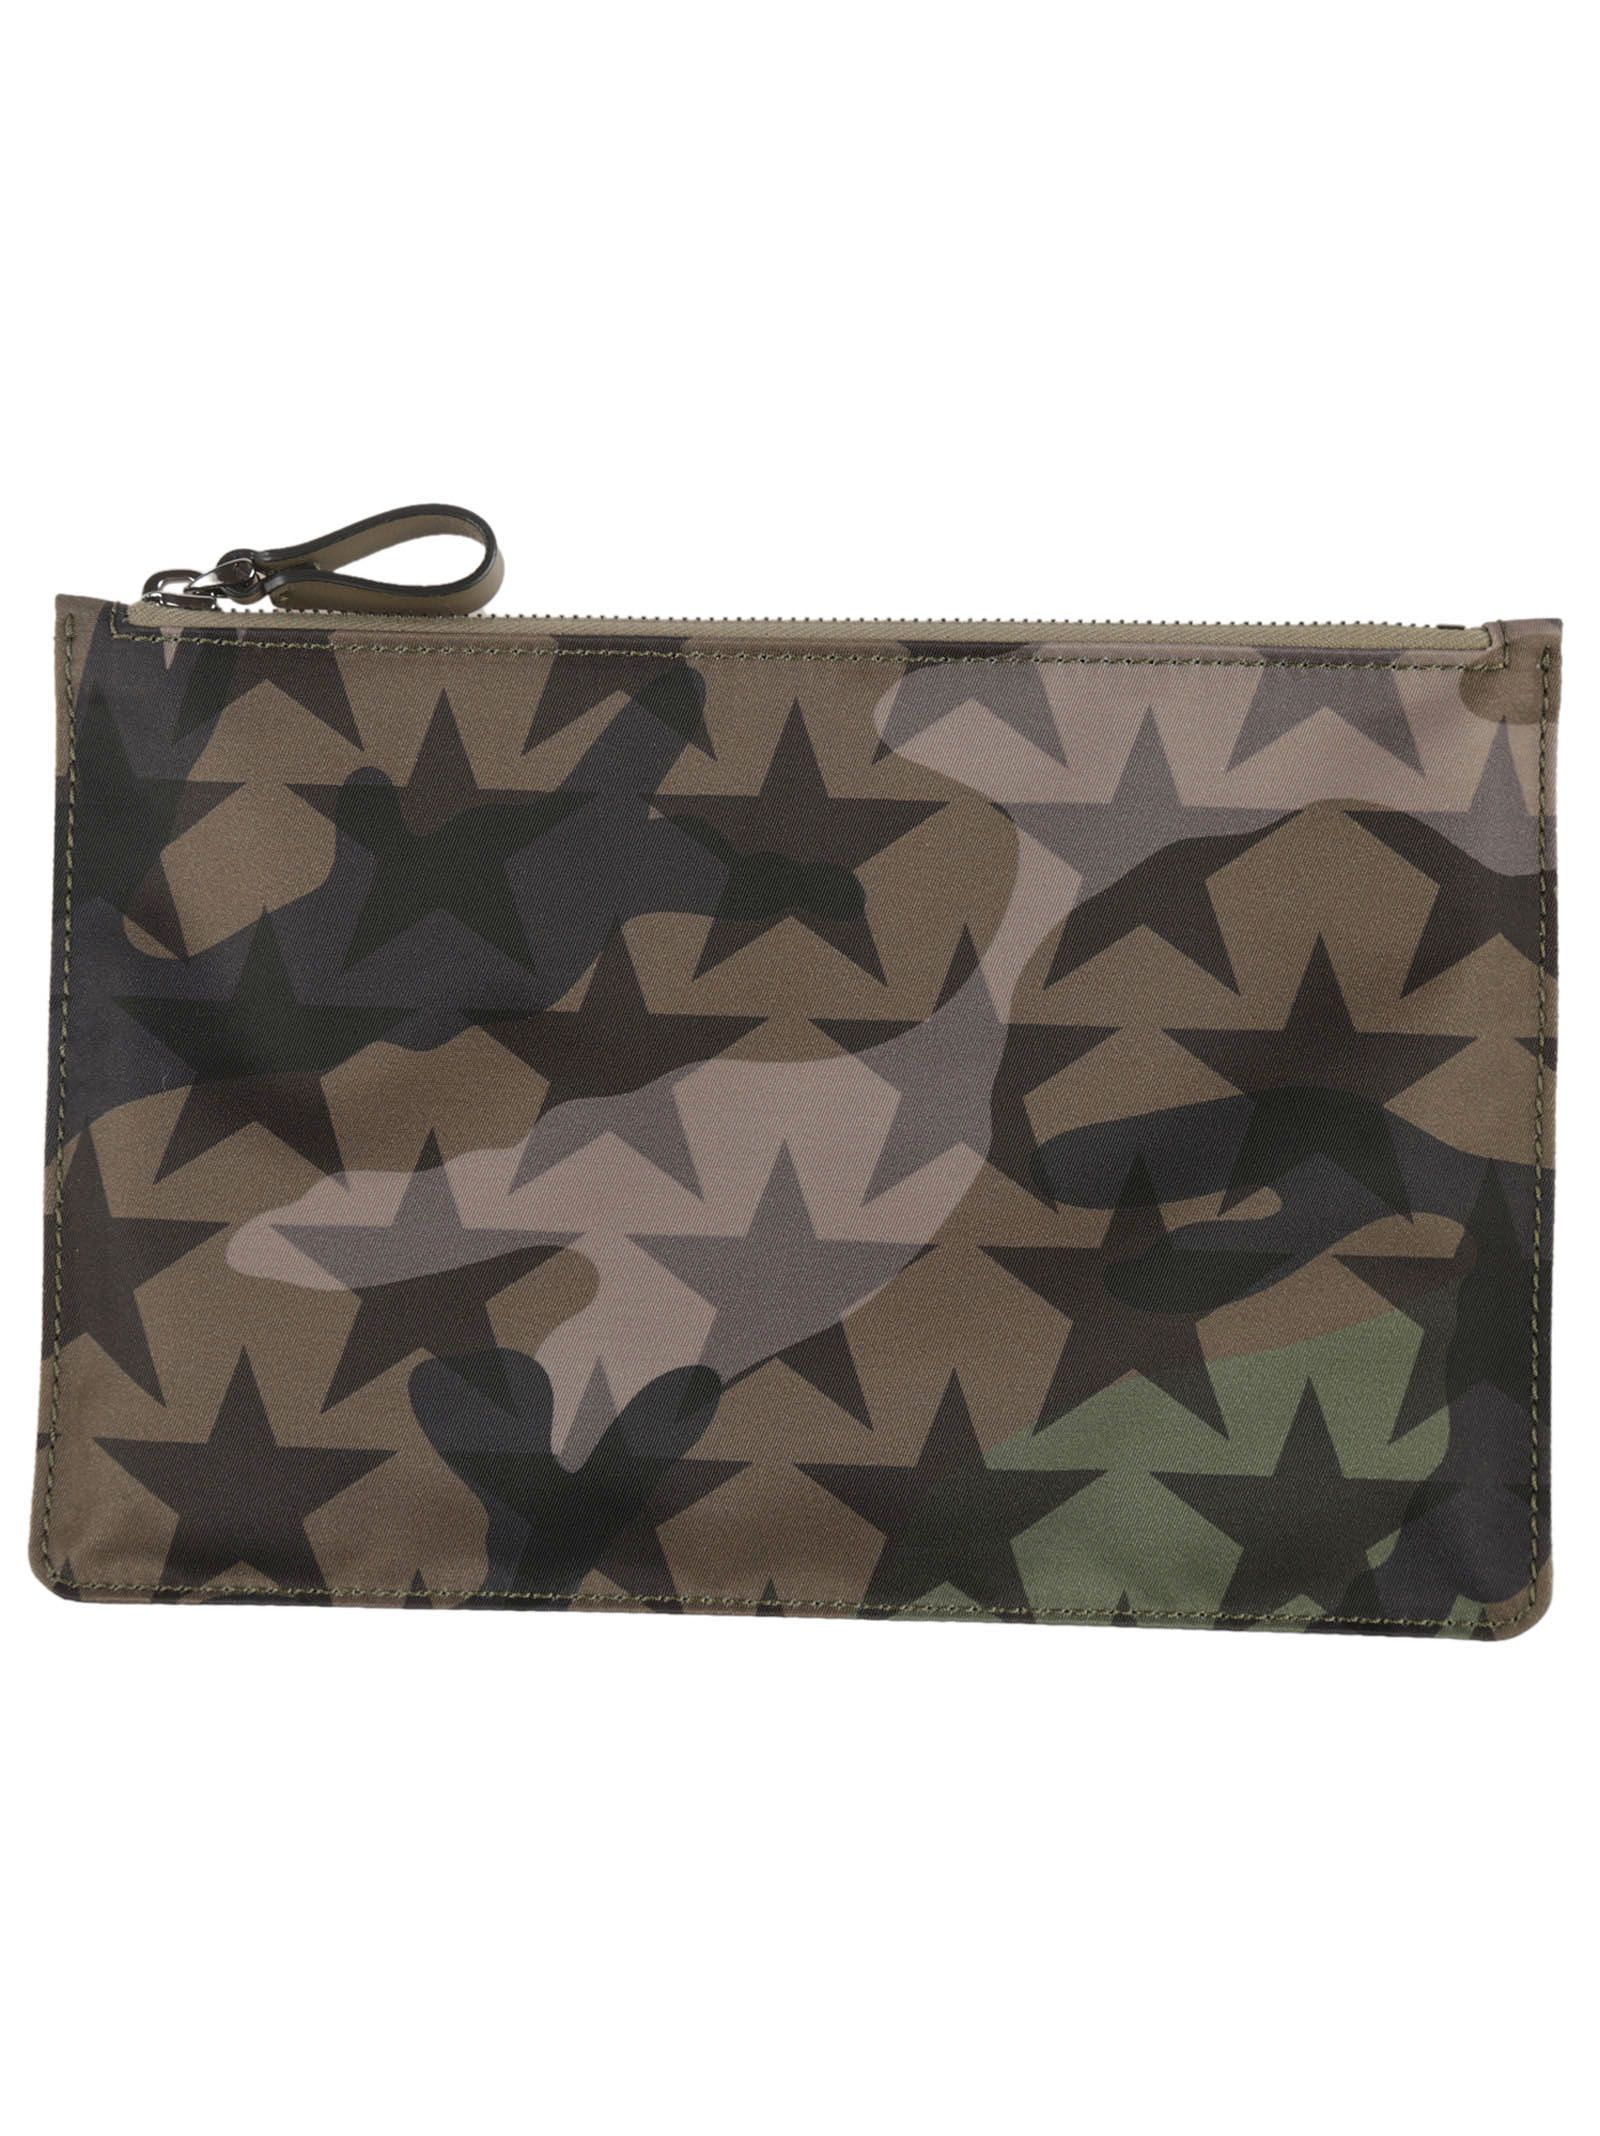 Military Green Star Printed Flat Small Pouch